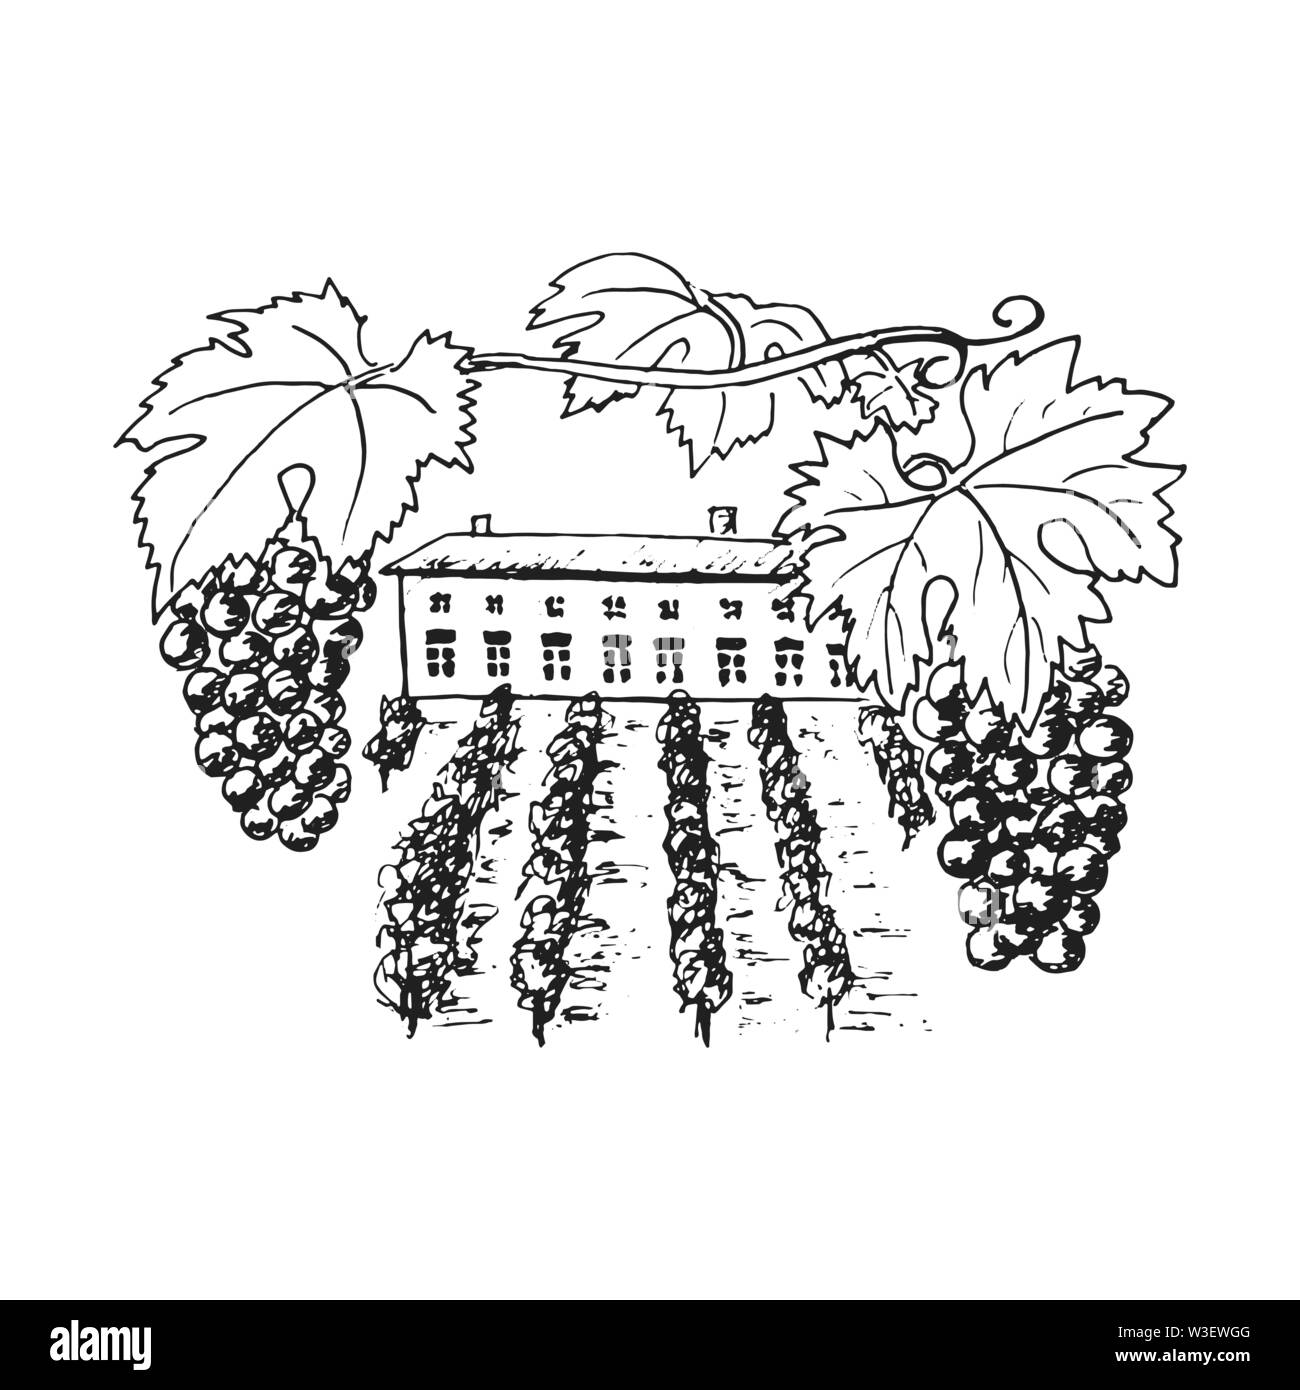 Wine plantation, grapes hills, trees, house, winery on the horizon vector illustration. Hand drawn grapewine, folliage. Ink pen vintage sketch. For pr - Stock Image